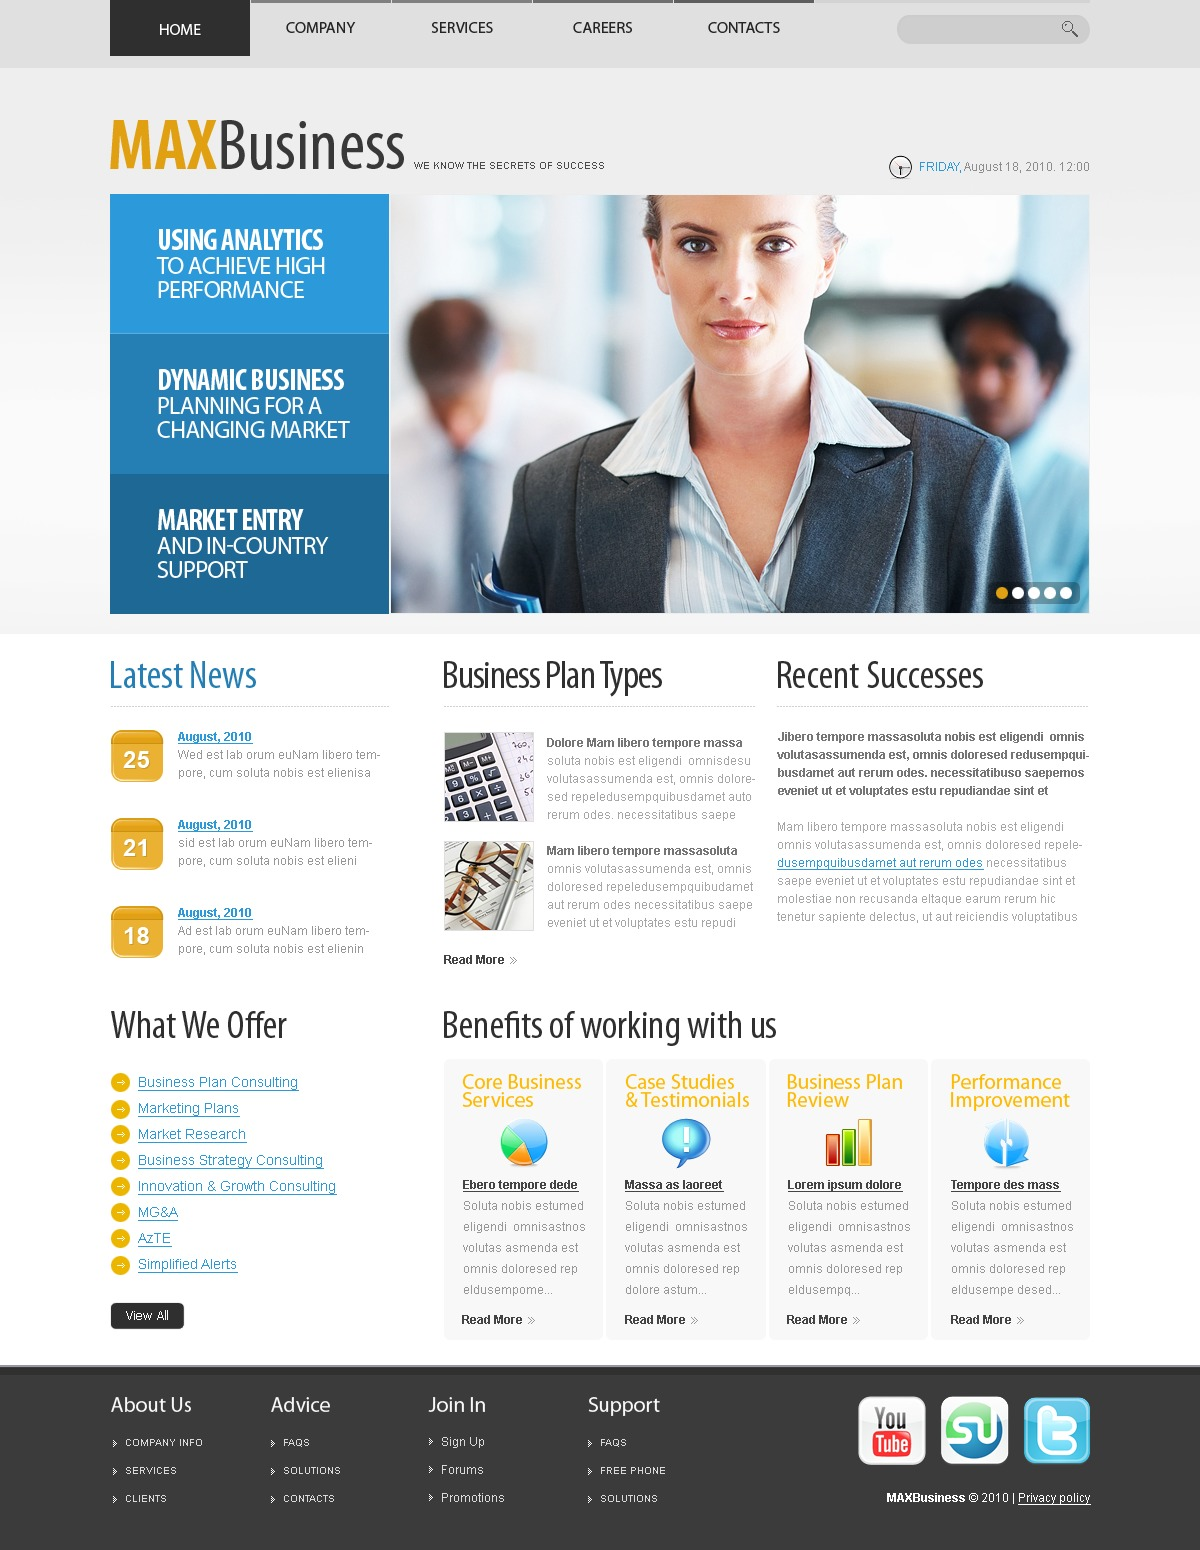 The Max Business Company PSD Design 54508, one of the best PSD templates of its kind (business, flash 8, wide), also known as max business company PSD template, corporate solutions PSD template, innovations PSD template, contacts PSD template, service PSD template, support PSD template, information dealer PSD template, stocks PSD template, team PSD template, success PSD template, money PSD template, marketing PSD template, director PSD template, manager PSD template, analytics PSD template, planning PSD template, limited PSD template, office PSD template, sales and related with max business company, corporate solutions, innovations, contacts, service, support, information dealer, stocks, team, success, money, marketing, director, manager, analytics, planning, limited, office, sales, etc.